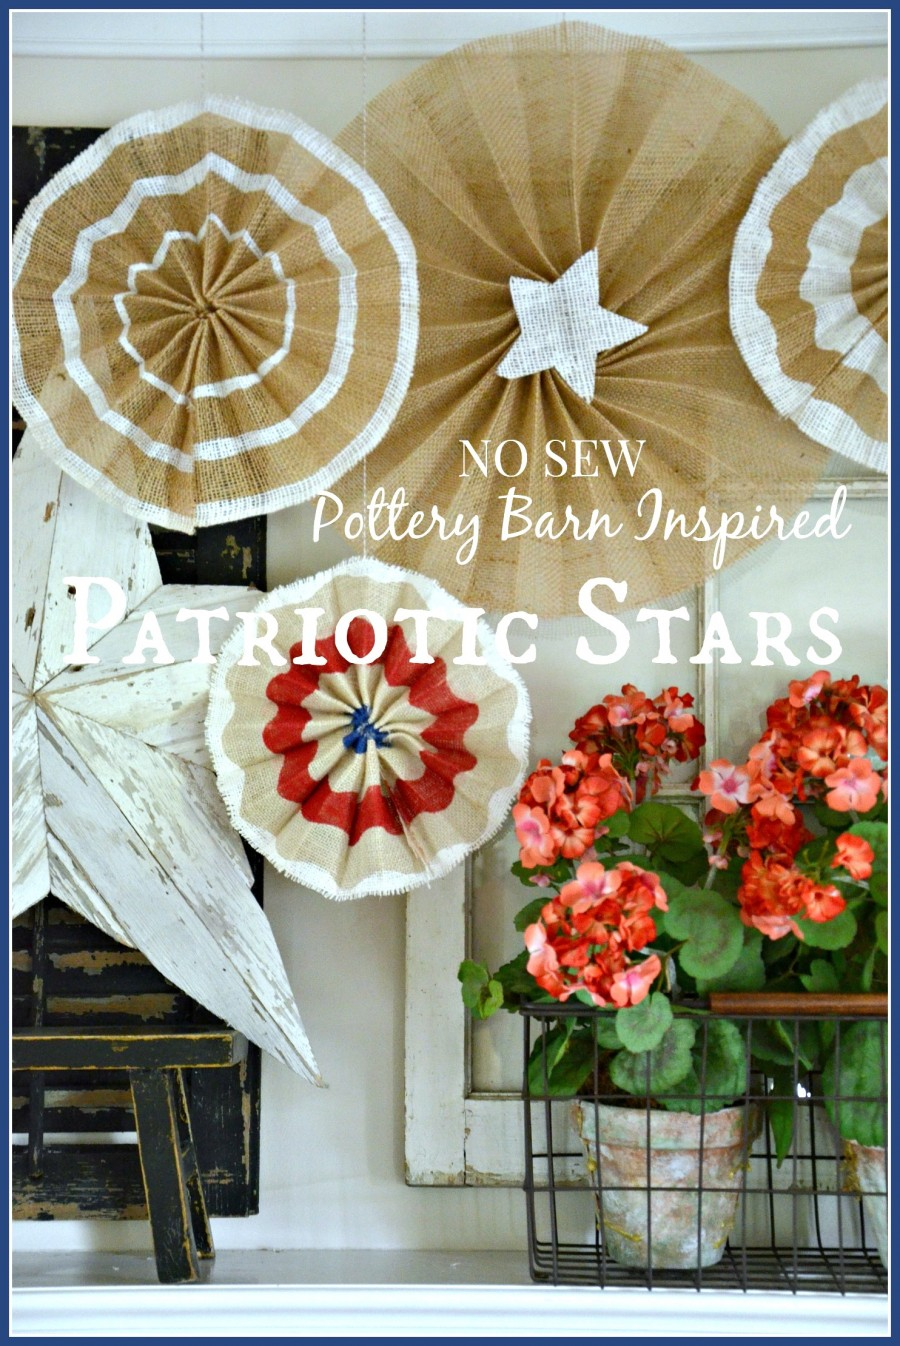 NO SEW POTTERY BARN INSPIRED PATRIOTIC STARS